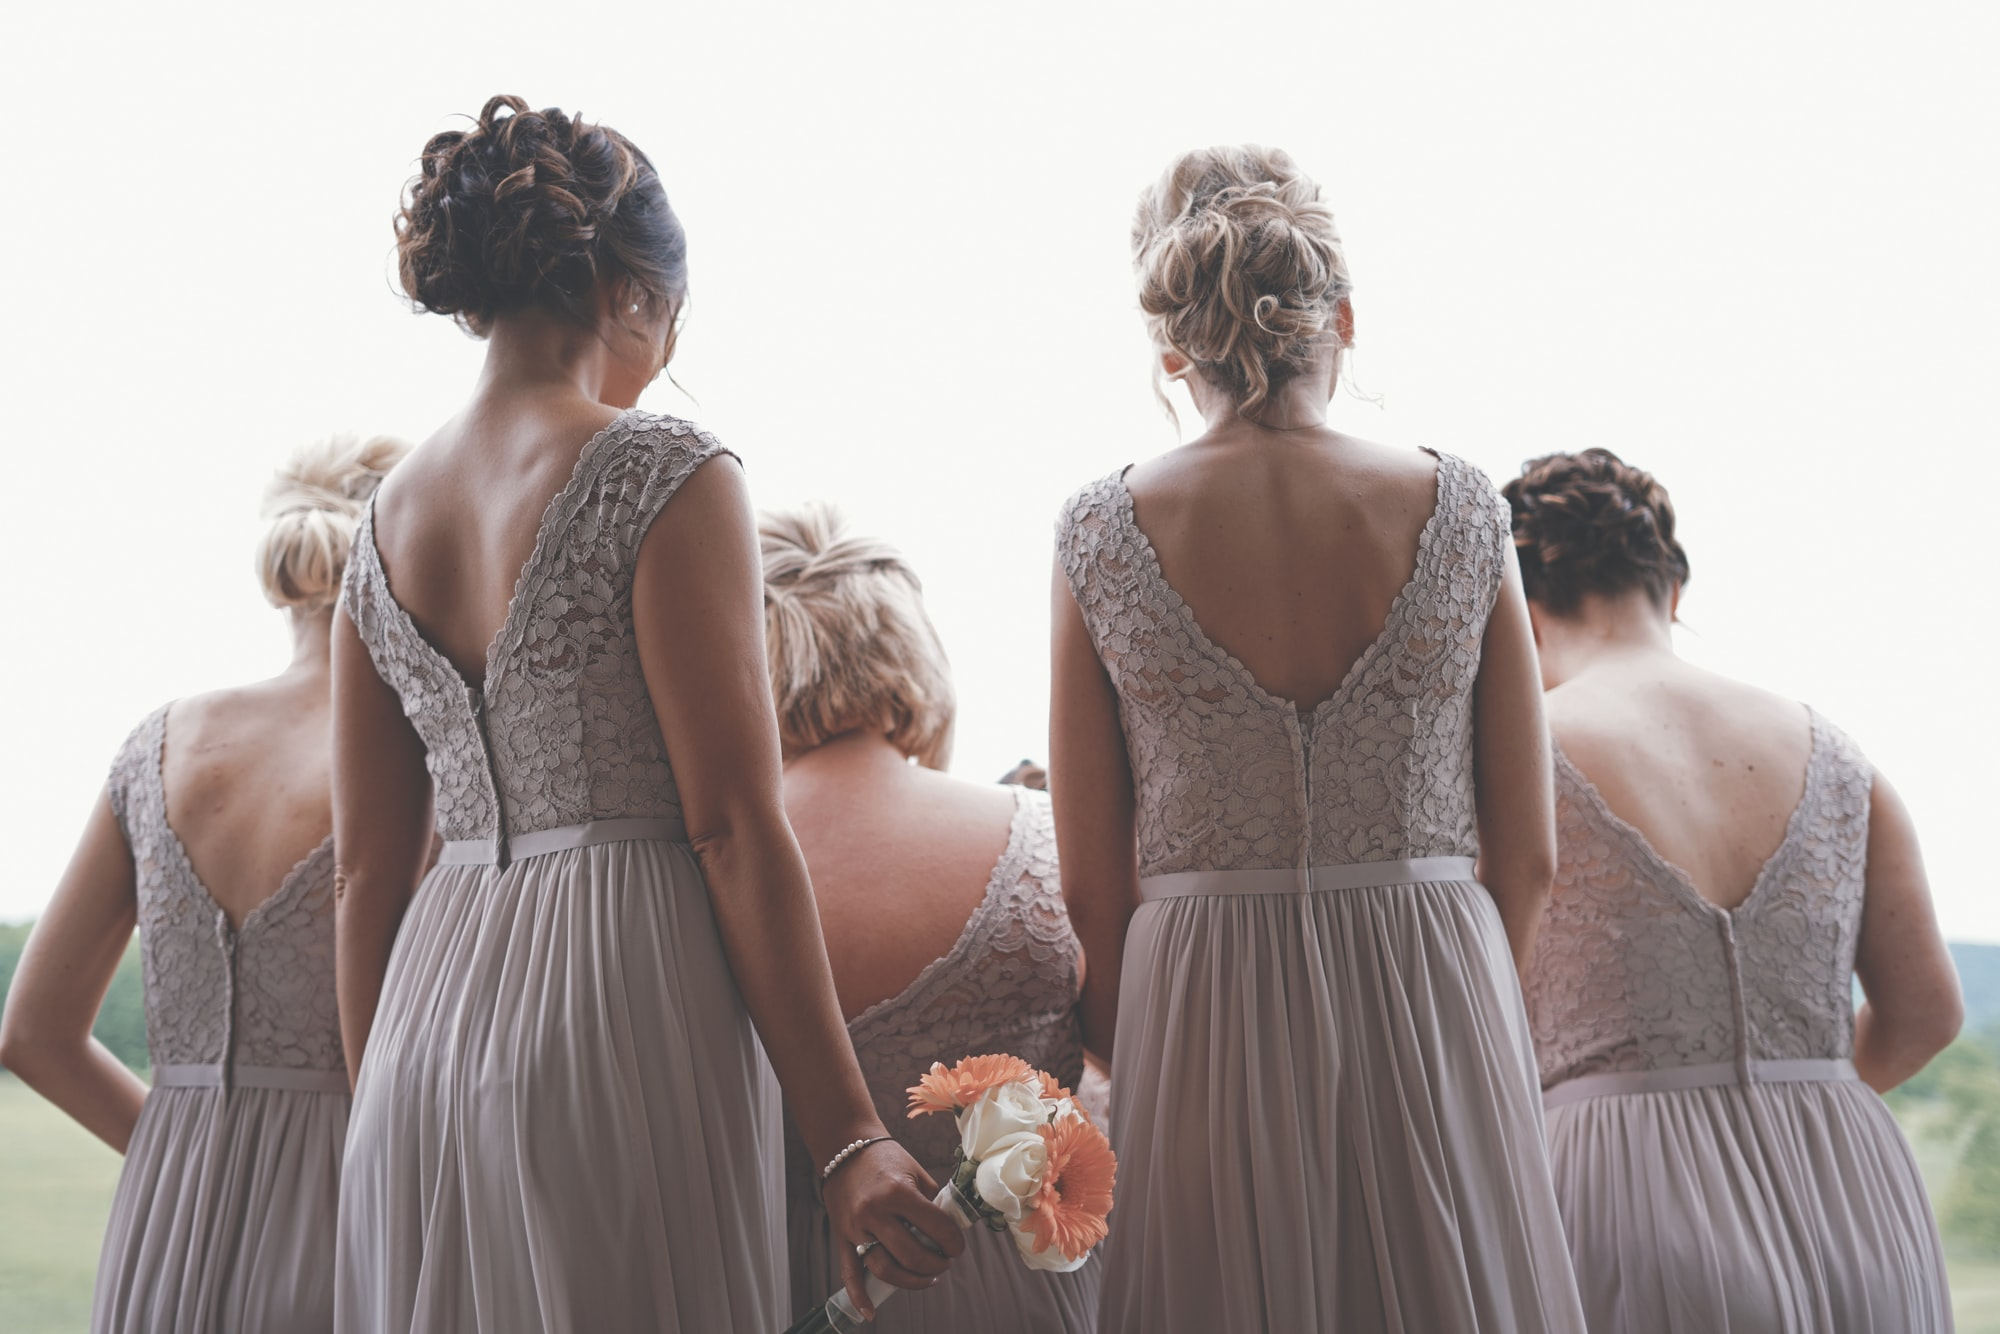 How to Choose the Right Bridesmaids